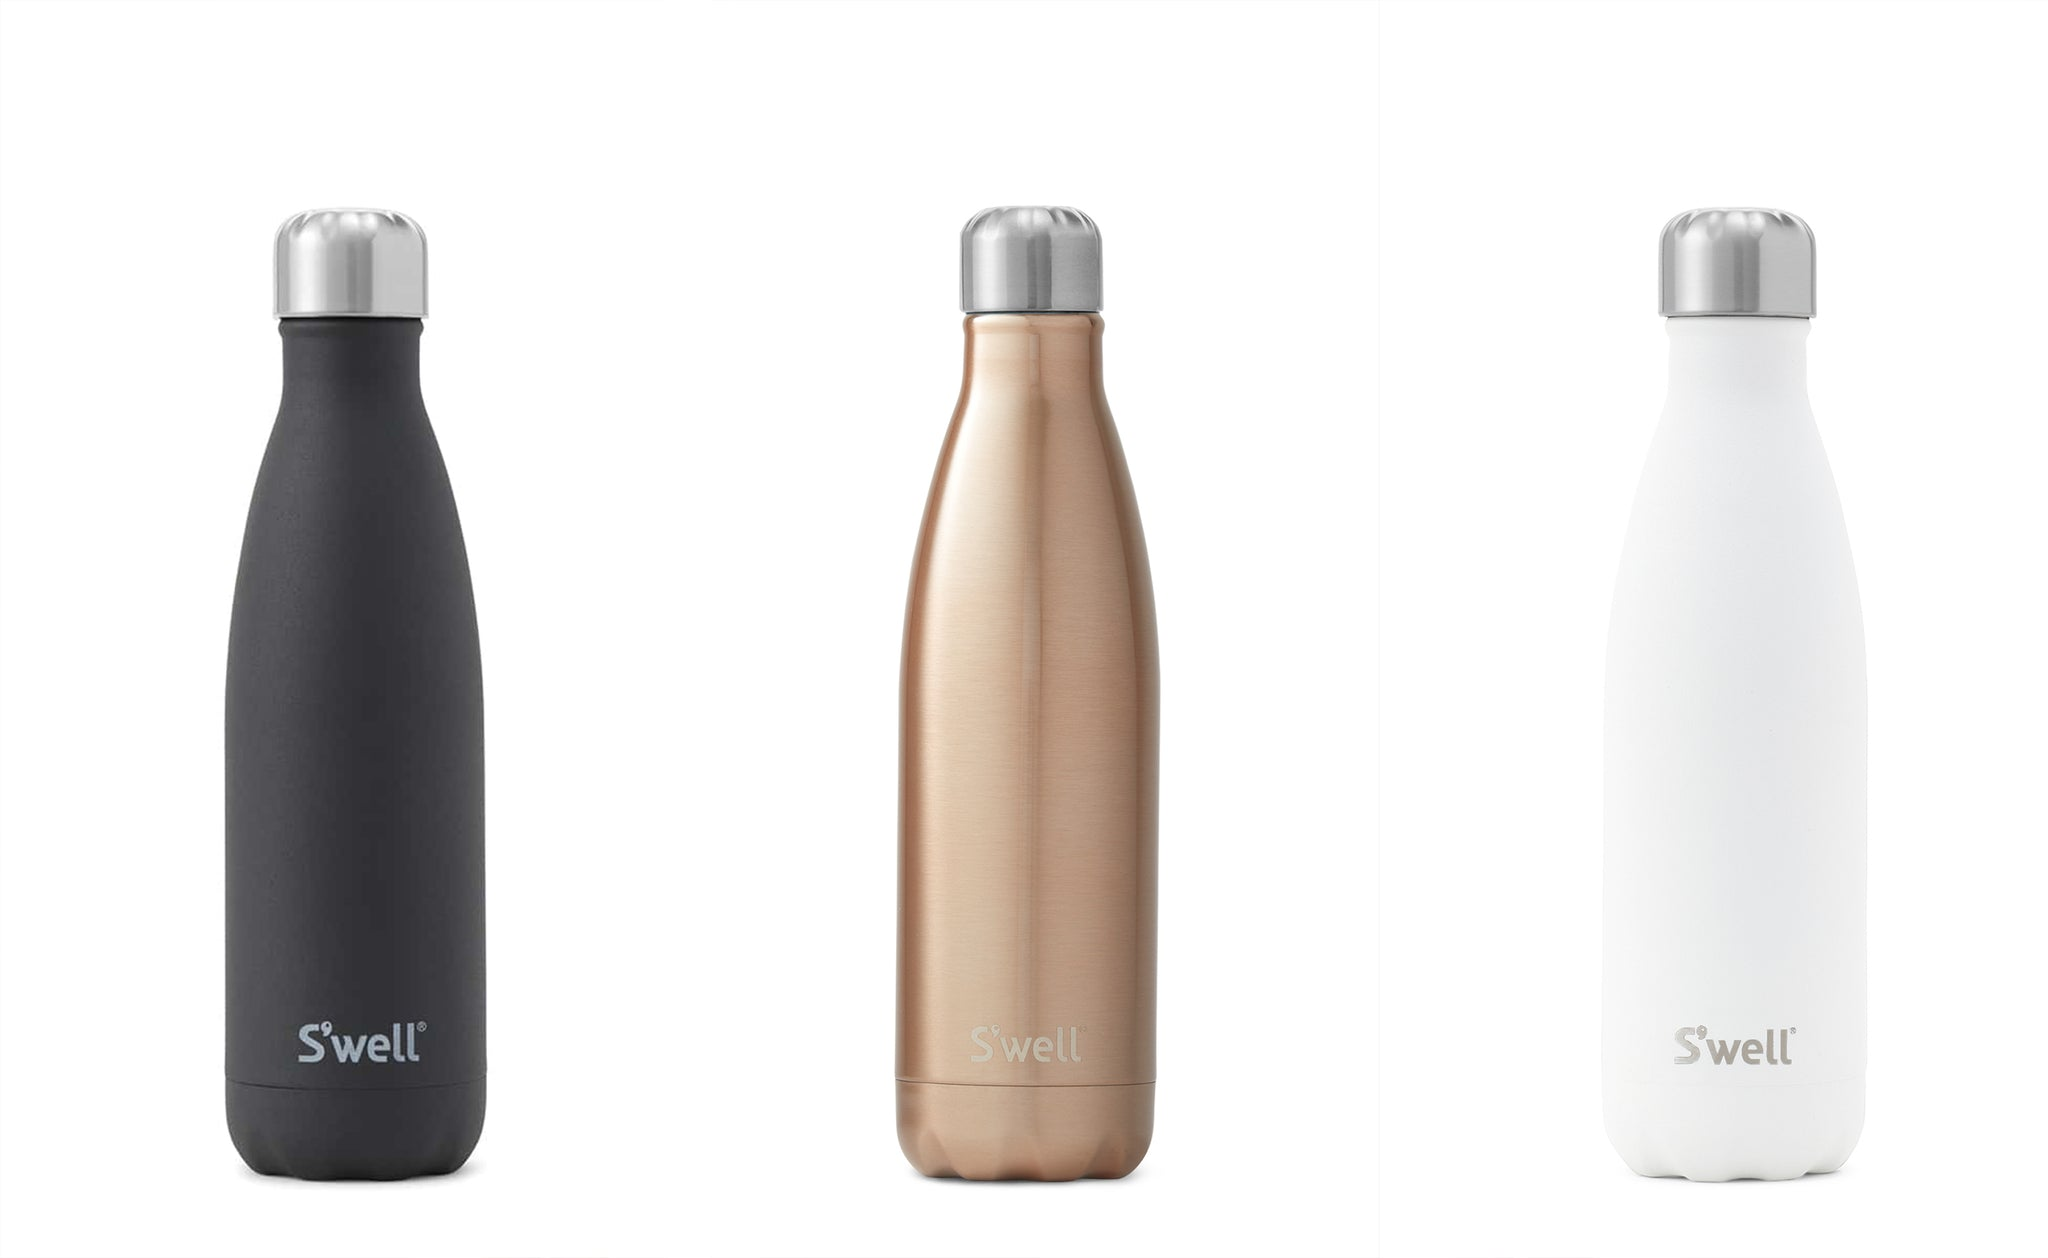 7. Reusable S'well drink bottle, stainless steel and insulated